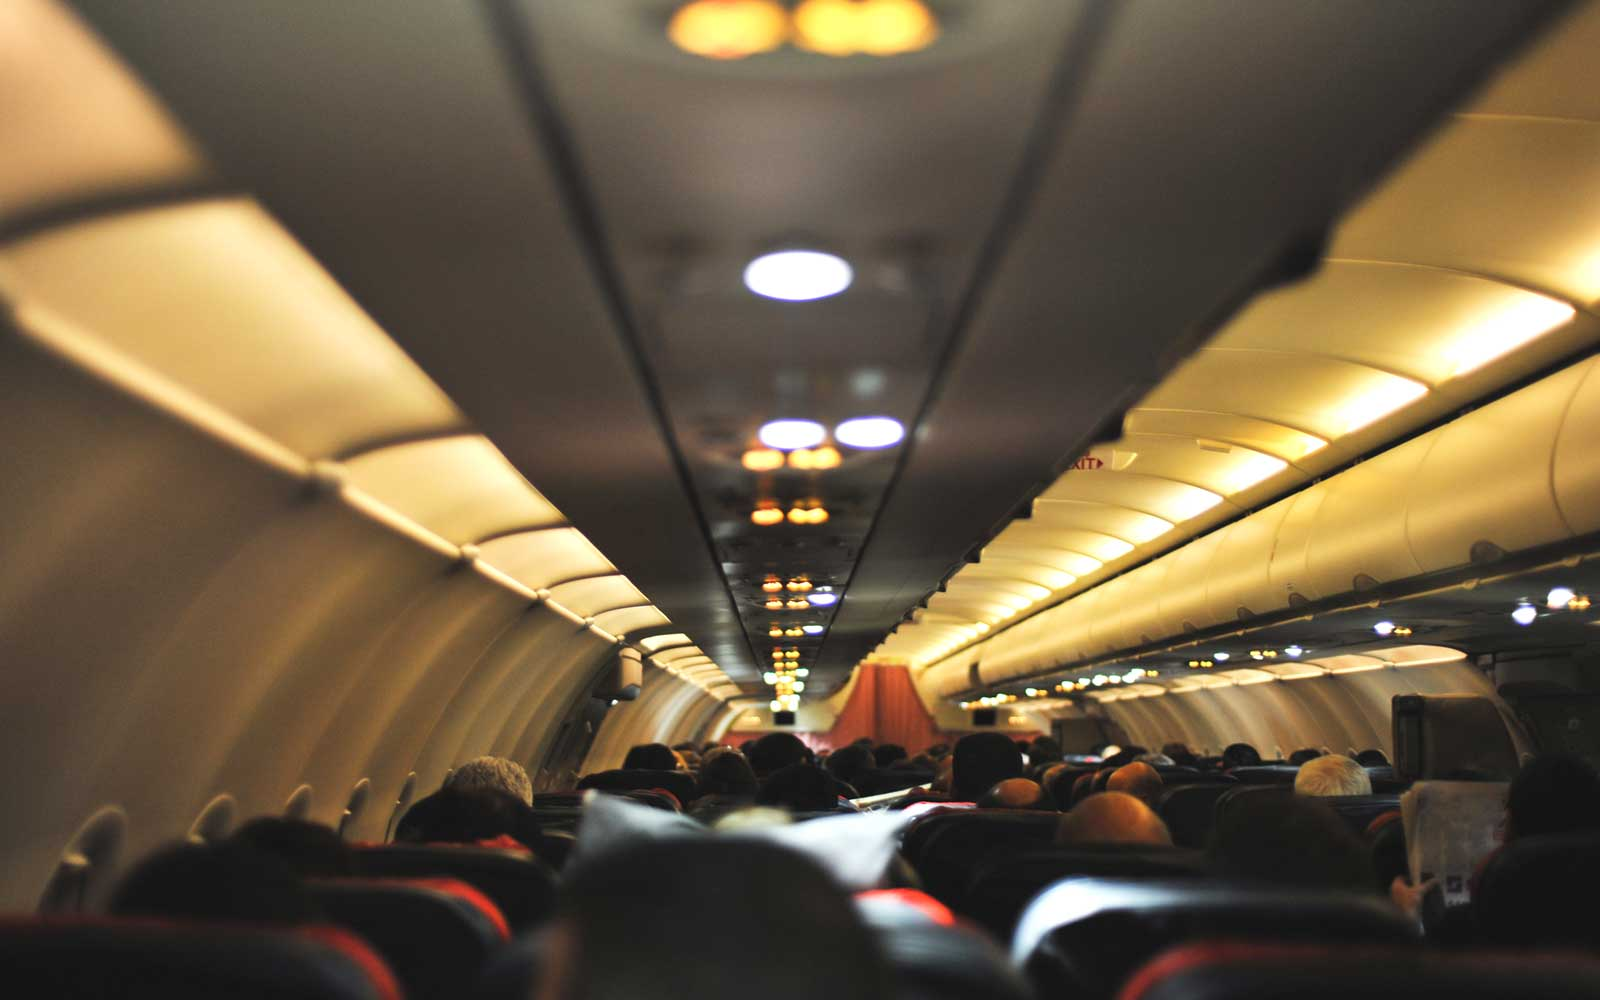 How Likely For A Doctor To Be On Your Flight